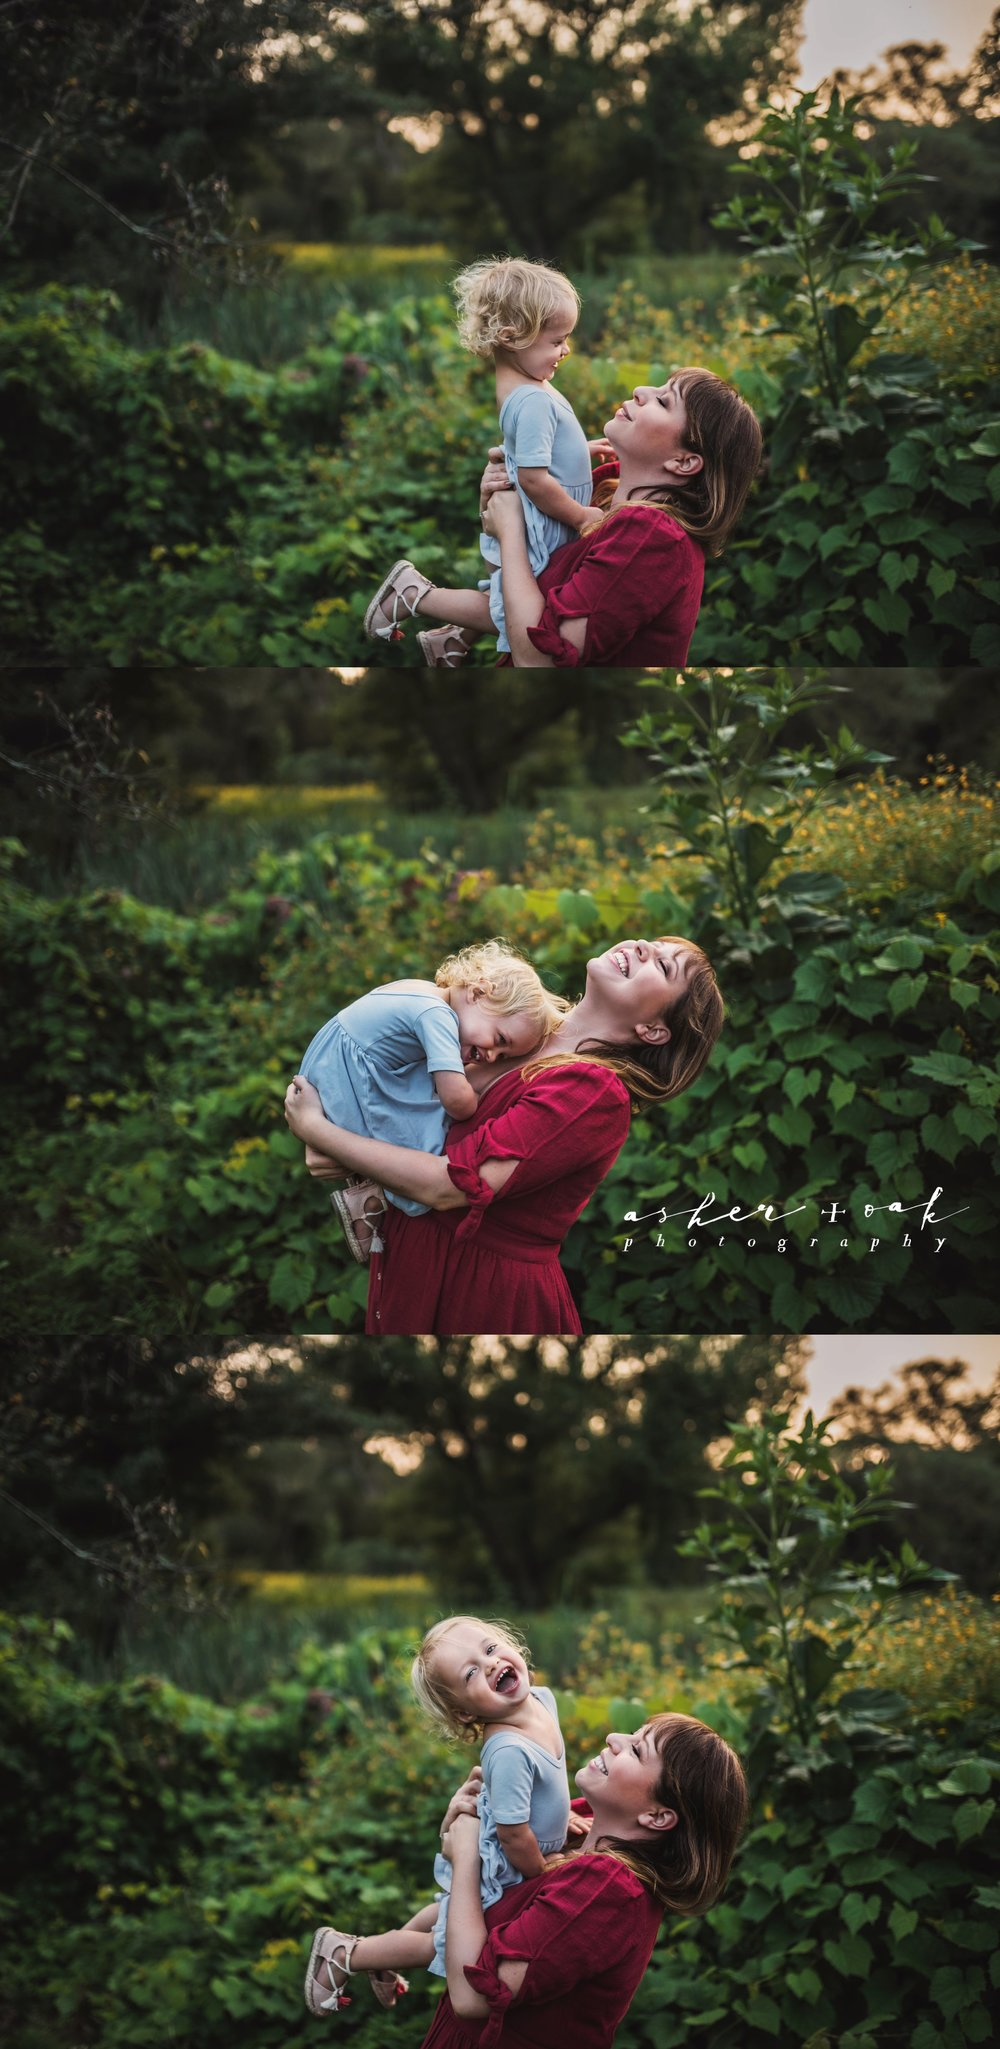 Massachusetts_Family_Photographer_Portrait_Motherhood_Mom_Toddler_Arnold_Arboretum_Boston_Asher_and_Oak_Photography.jpg